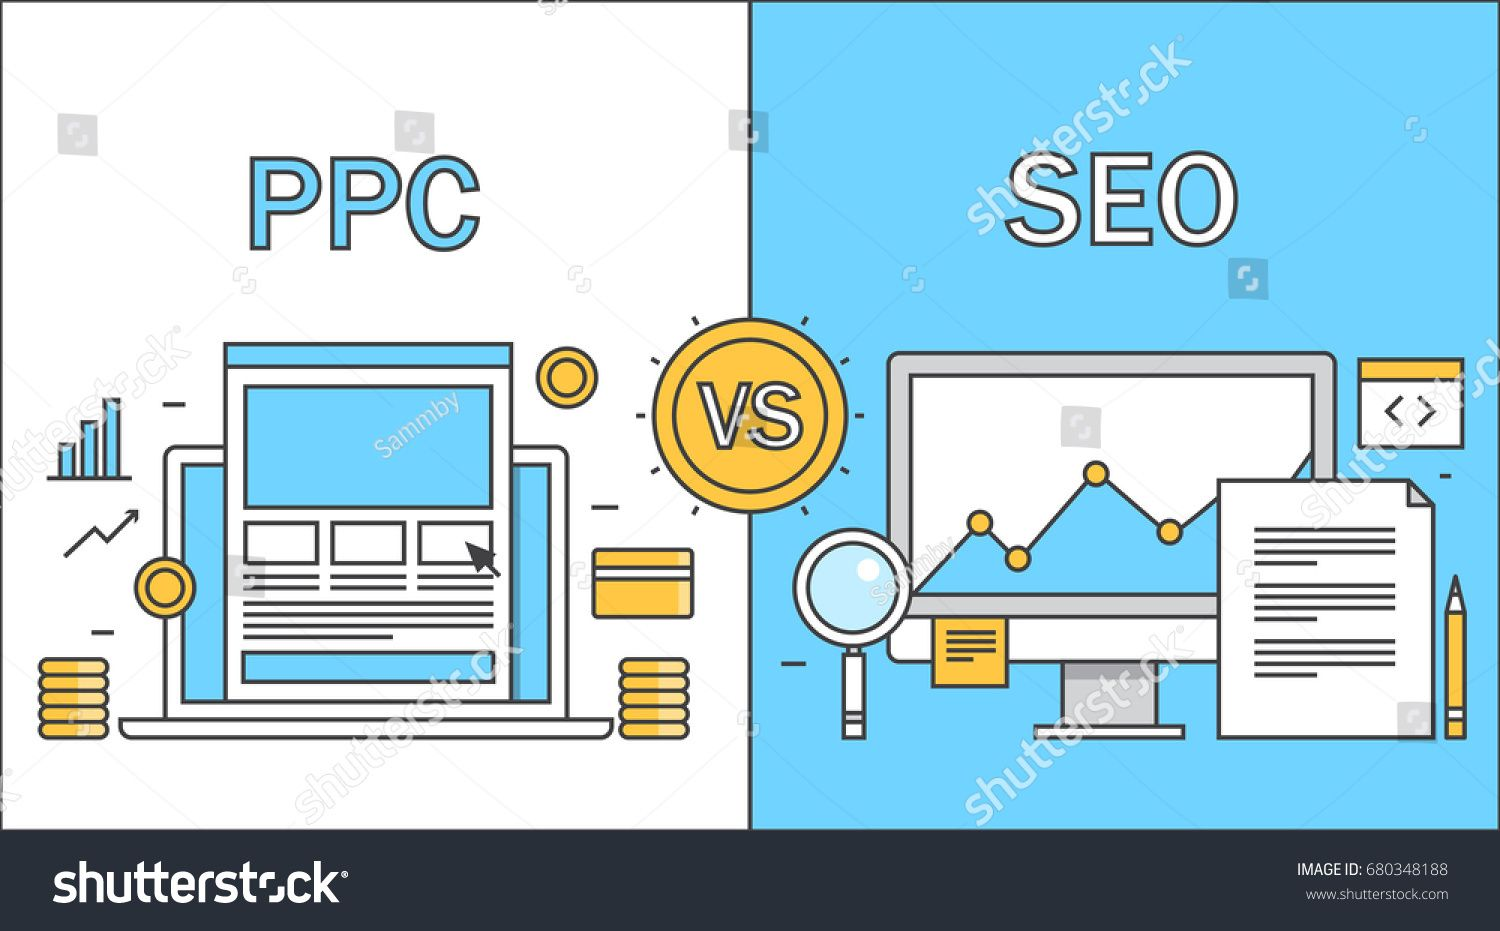 Advertising-Infographics-Comparison-Between-Seo-Ppc-Search-Optimization-Stock Advertising Infographics : Comparison Between Seo Ppc Search Optimization Stock Vector (Royalty Free) 680348188